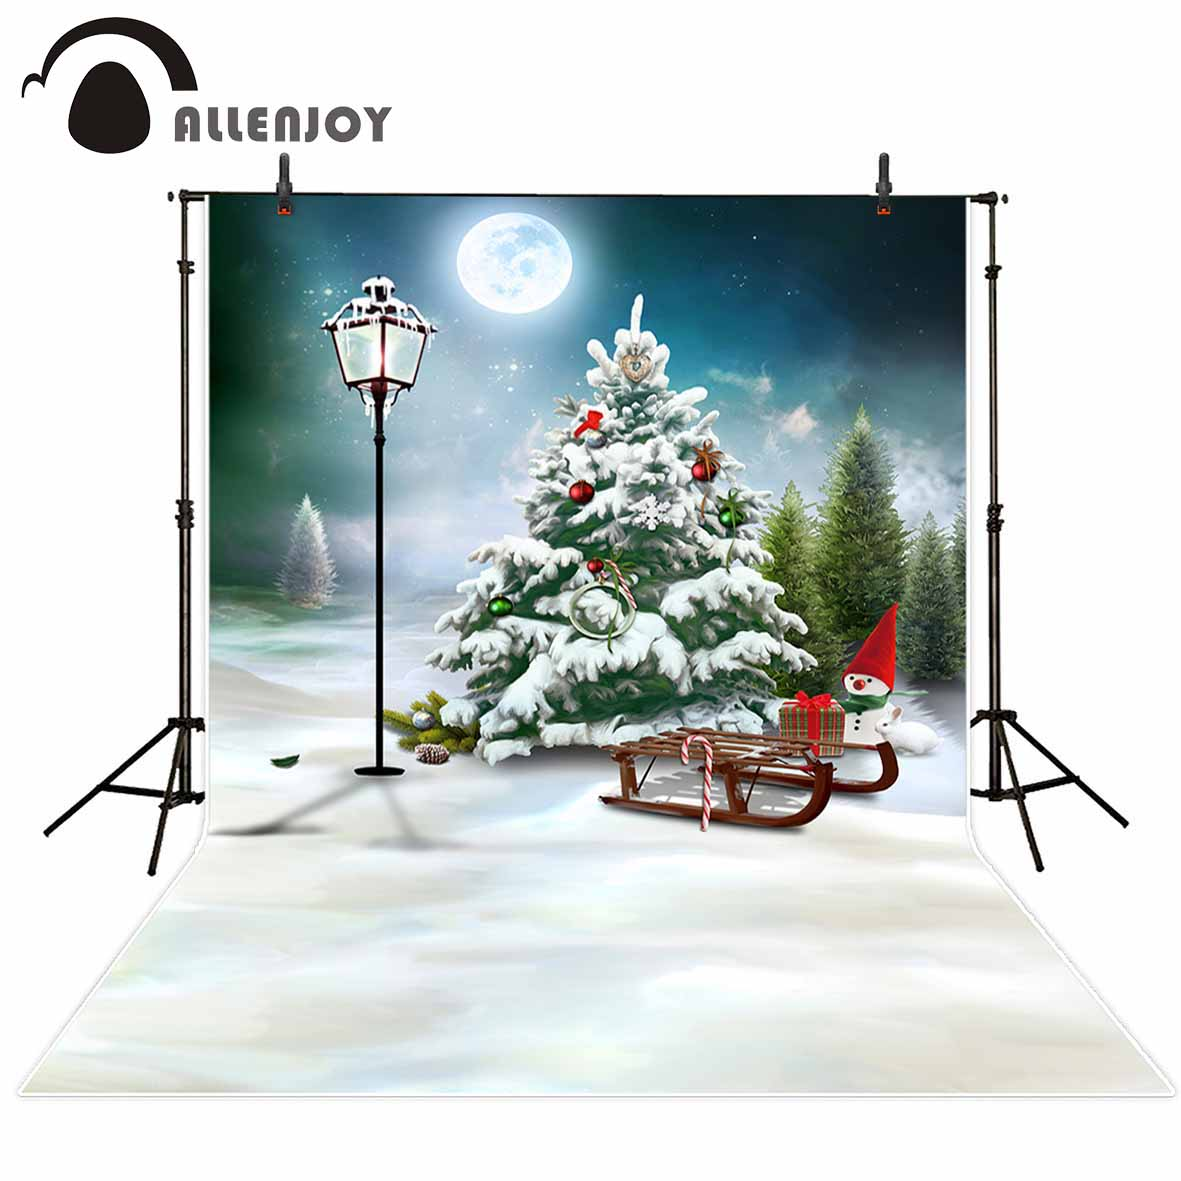 Allenjoy photography background Snow winter Christmas tree cartoon sled full moon background photo studio camera fotografica christmas backdrop photography allenjoy snow cap winter snowflakes background photographic studio vinyl children s camera photo